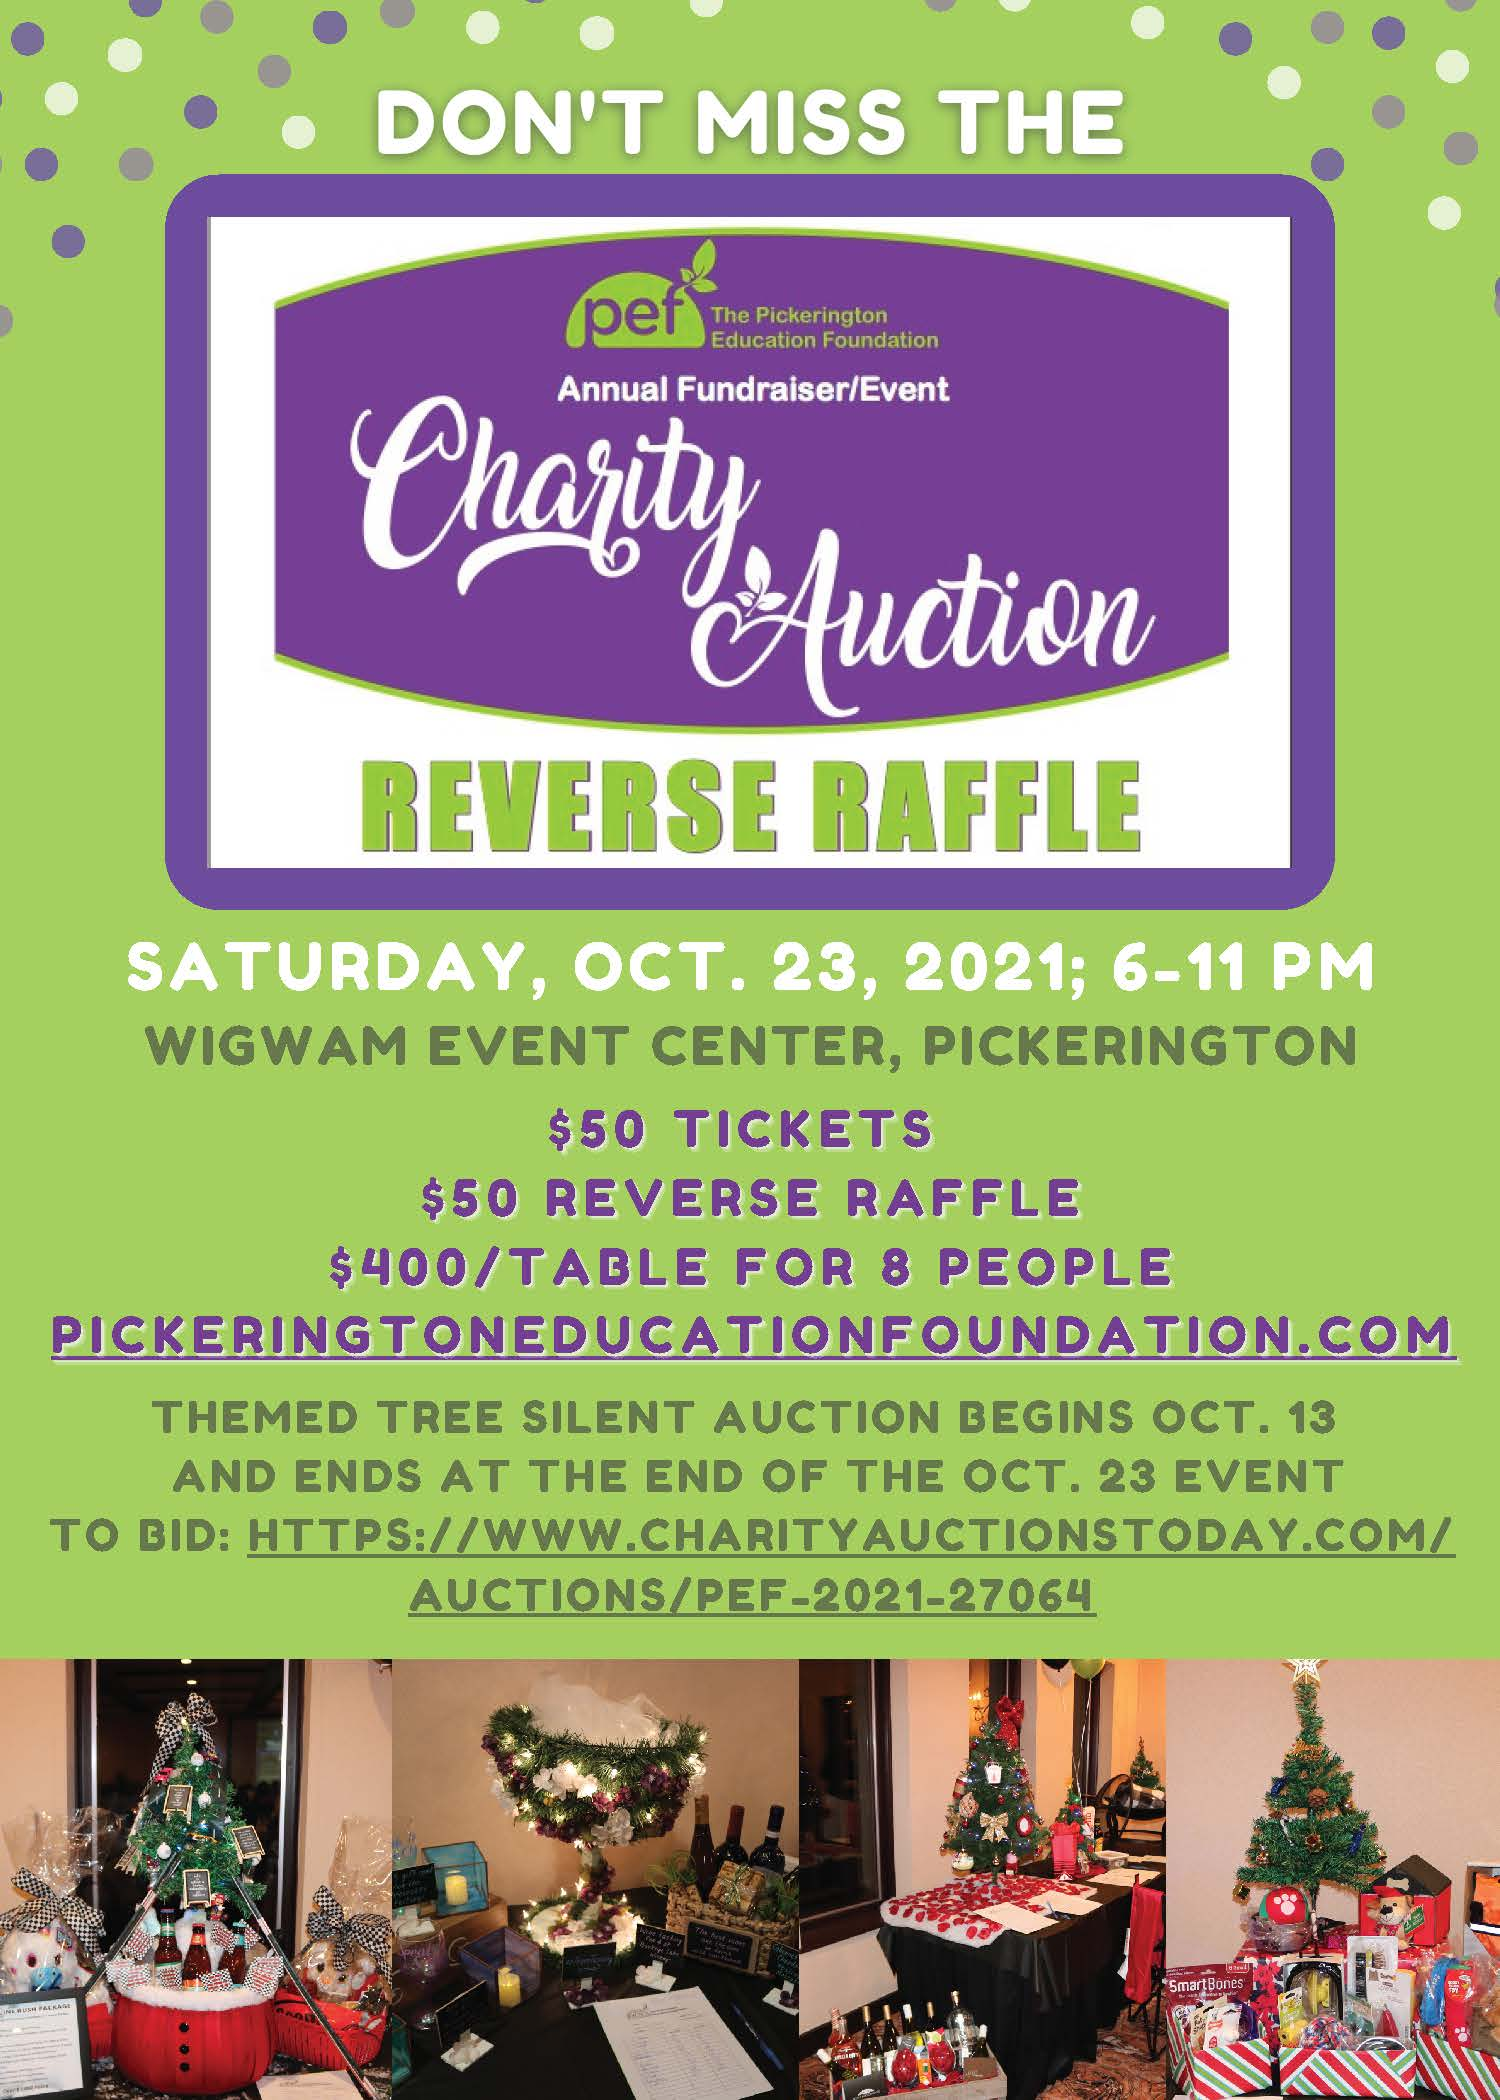 PEF Charity Auction flyer image